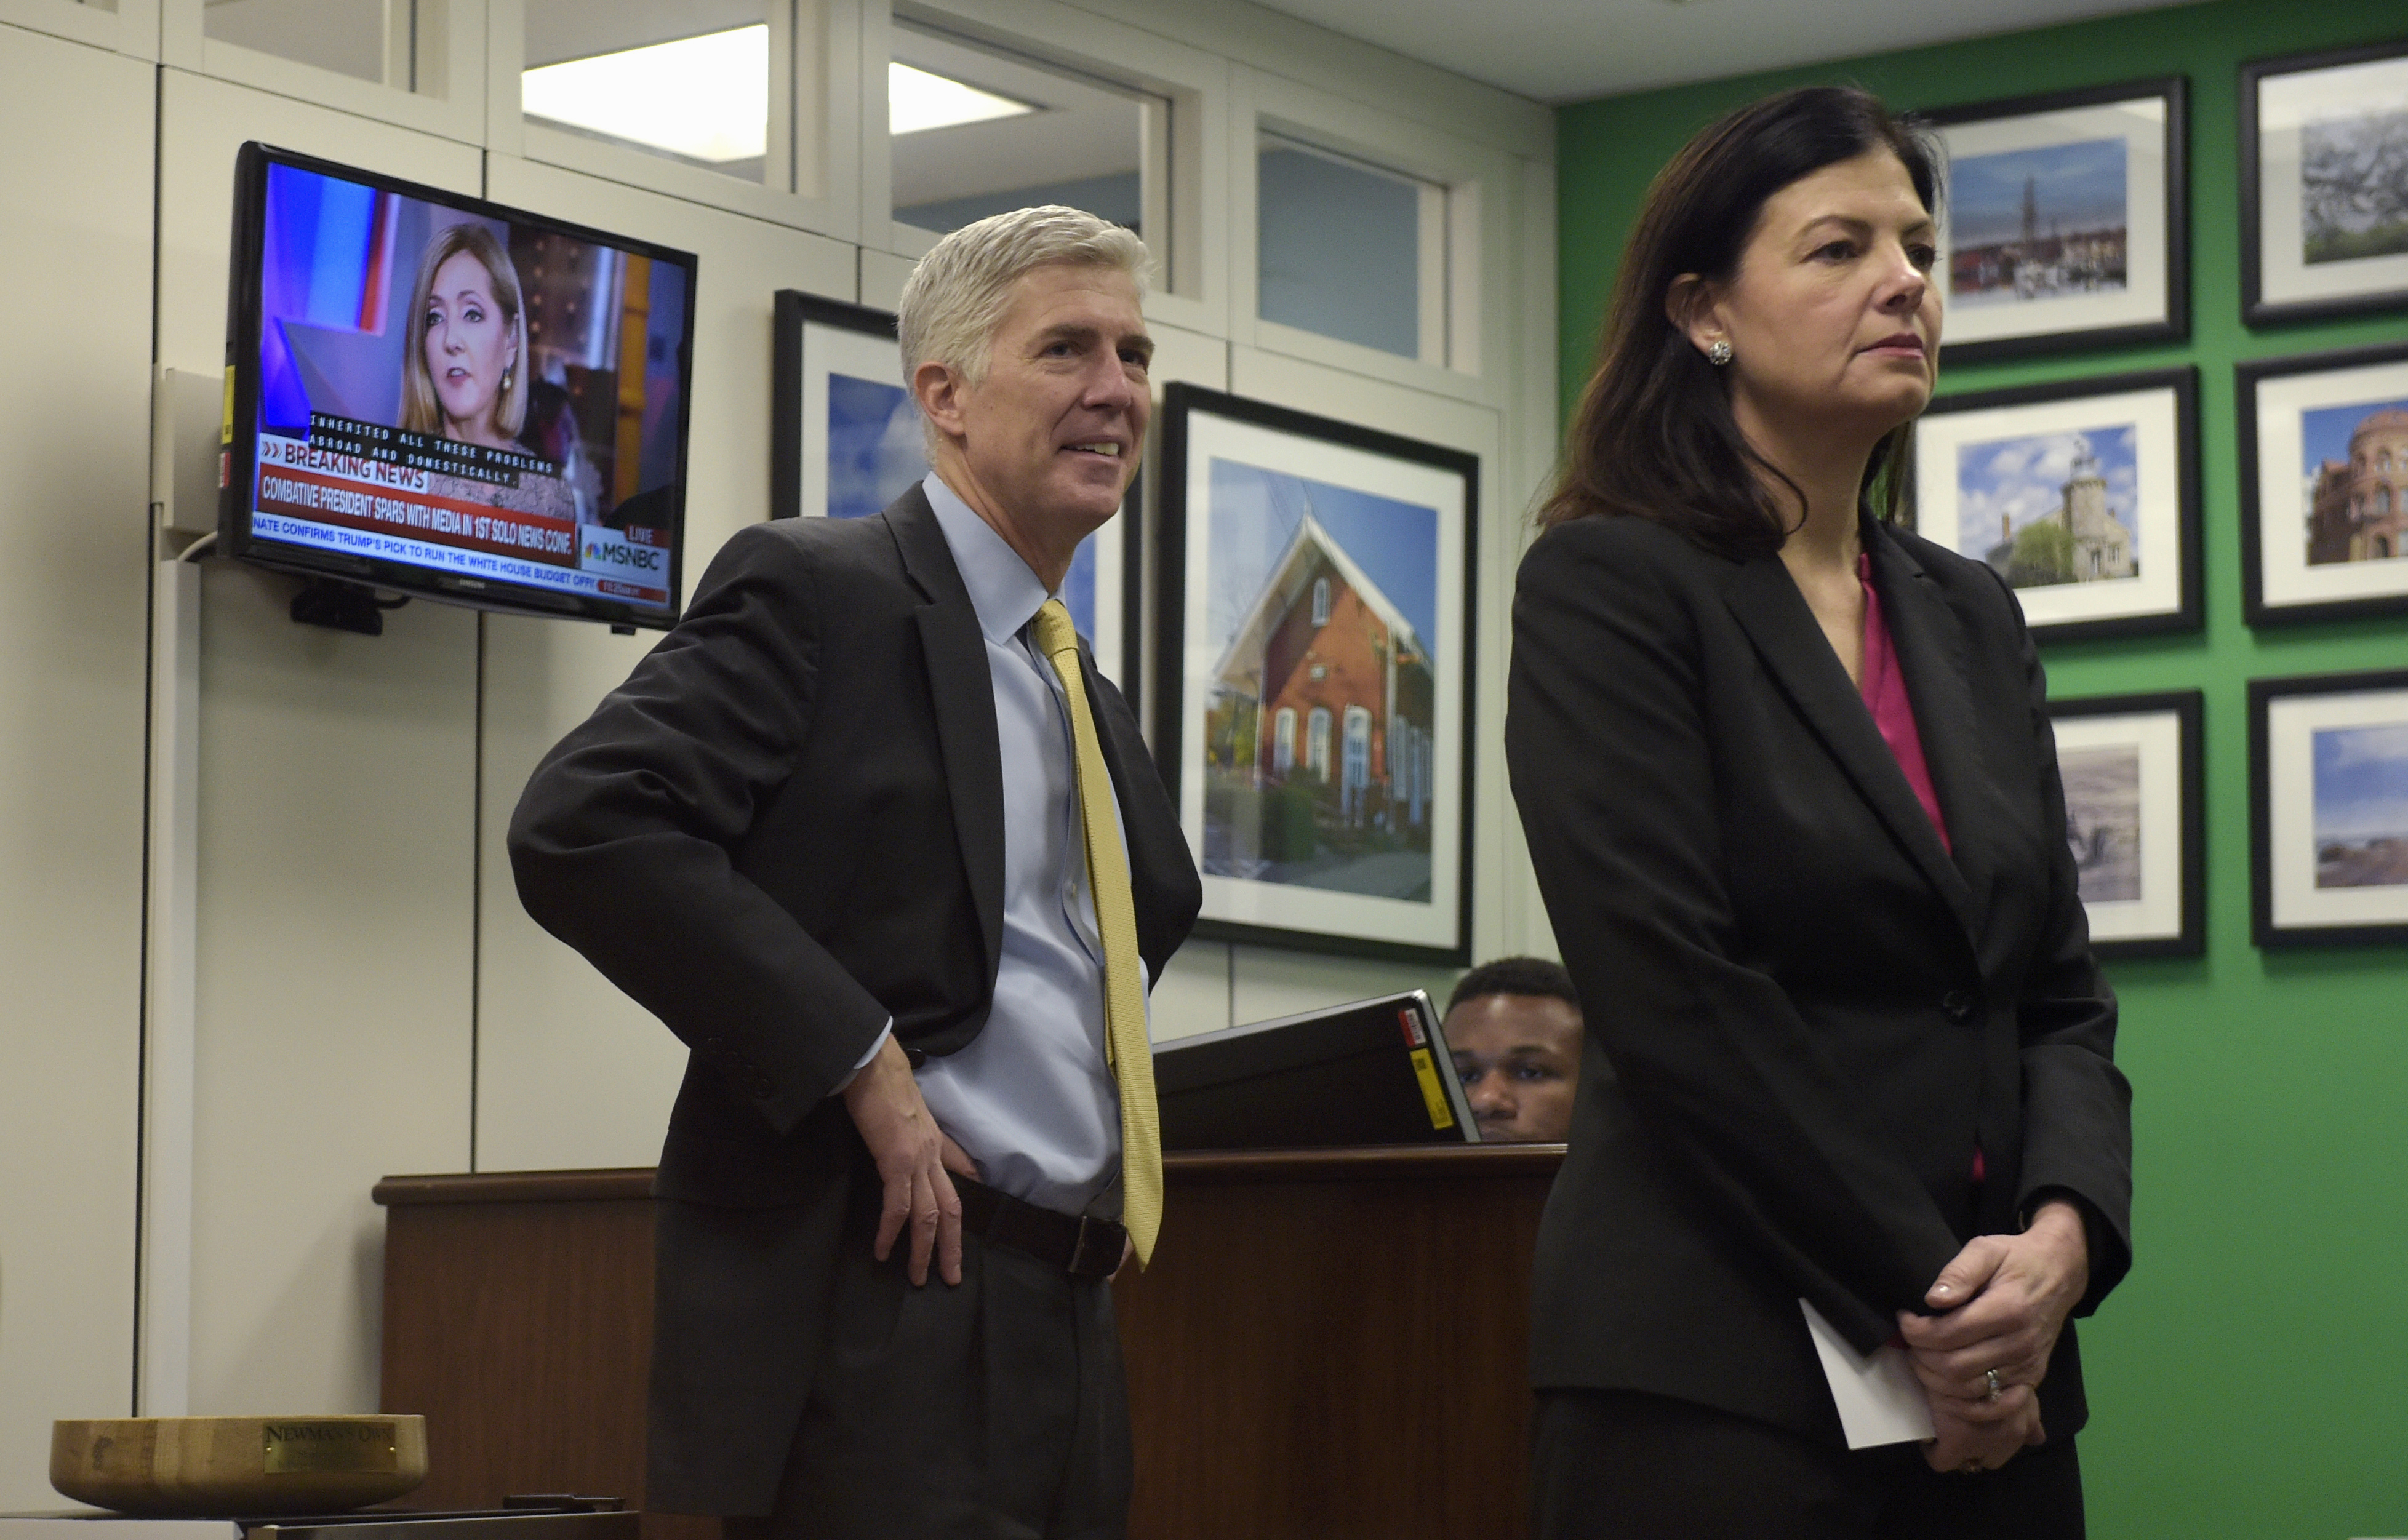 Supreme Court Gorsuch Environment FILE - In this Feb. 16, 2017 file photo, Supreme Court Justice nominee Neil Gorsuch and former New Hampshire Sen. Kelly Ayotte wait for a meeting with Sen. Chris Murphy, D-Conn. on Capitol Hill in Washington. By the time a lawsuit over pollution from a nuclear weapons plant had reached Judge Neil Gorsuch, it had crawled through the courts for more than two decades, outliving some of the landowners who said the contamination destroyed their property values. The pace of the litigation didn't sit well with Gorsuch, a judge for the Denver-based 10th U.S. Circuit Court of Appeals, and now a nominee for the U.S. Supreme Court. (AP Photo/Susan Walsh, File)